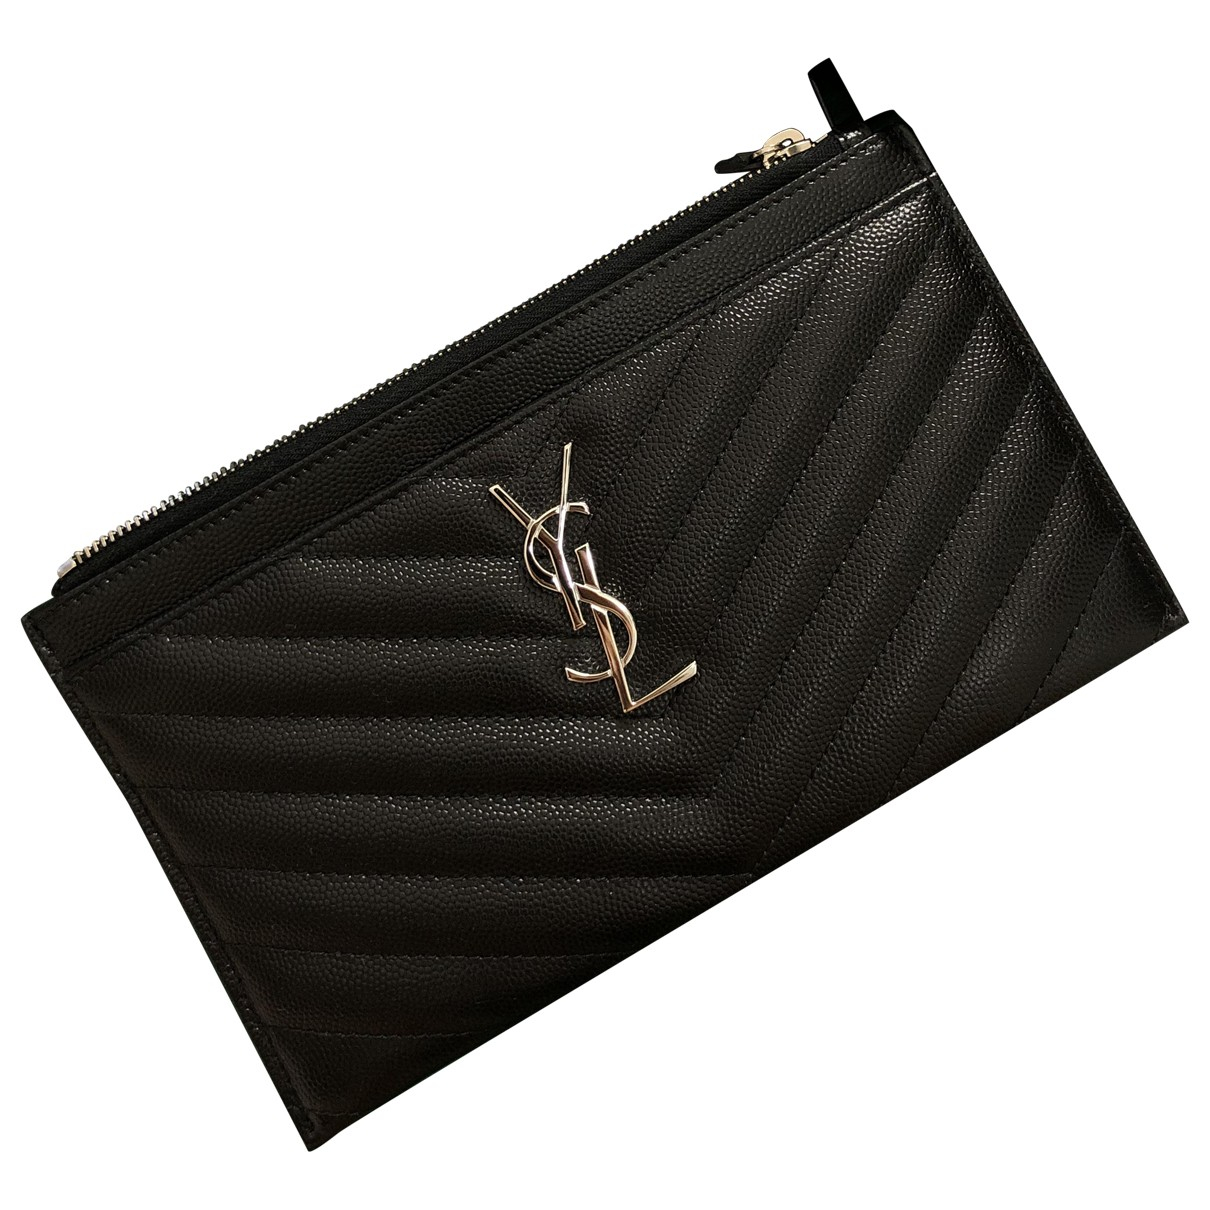 Billetero Monogramme de Cuero Saint Laurent